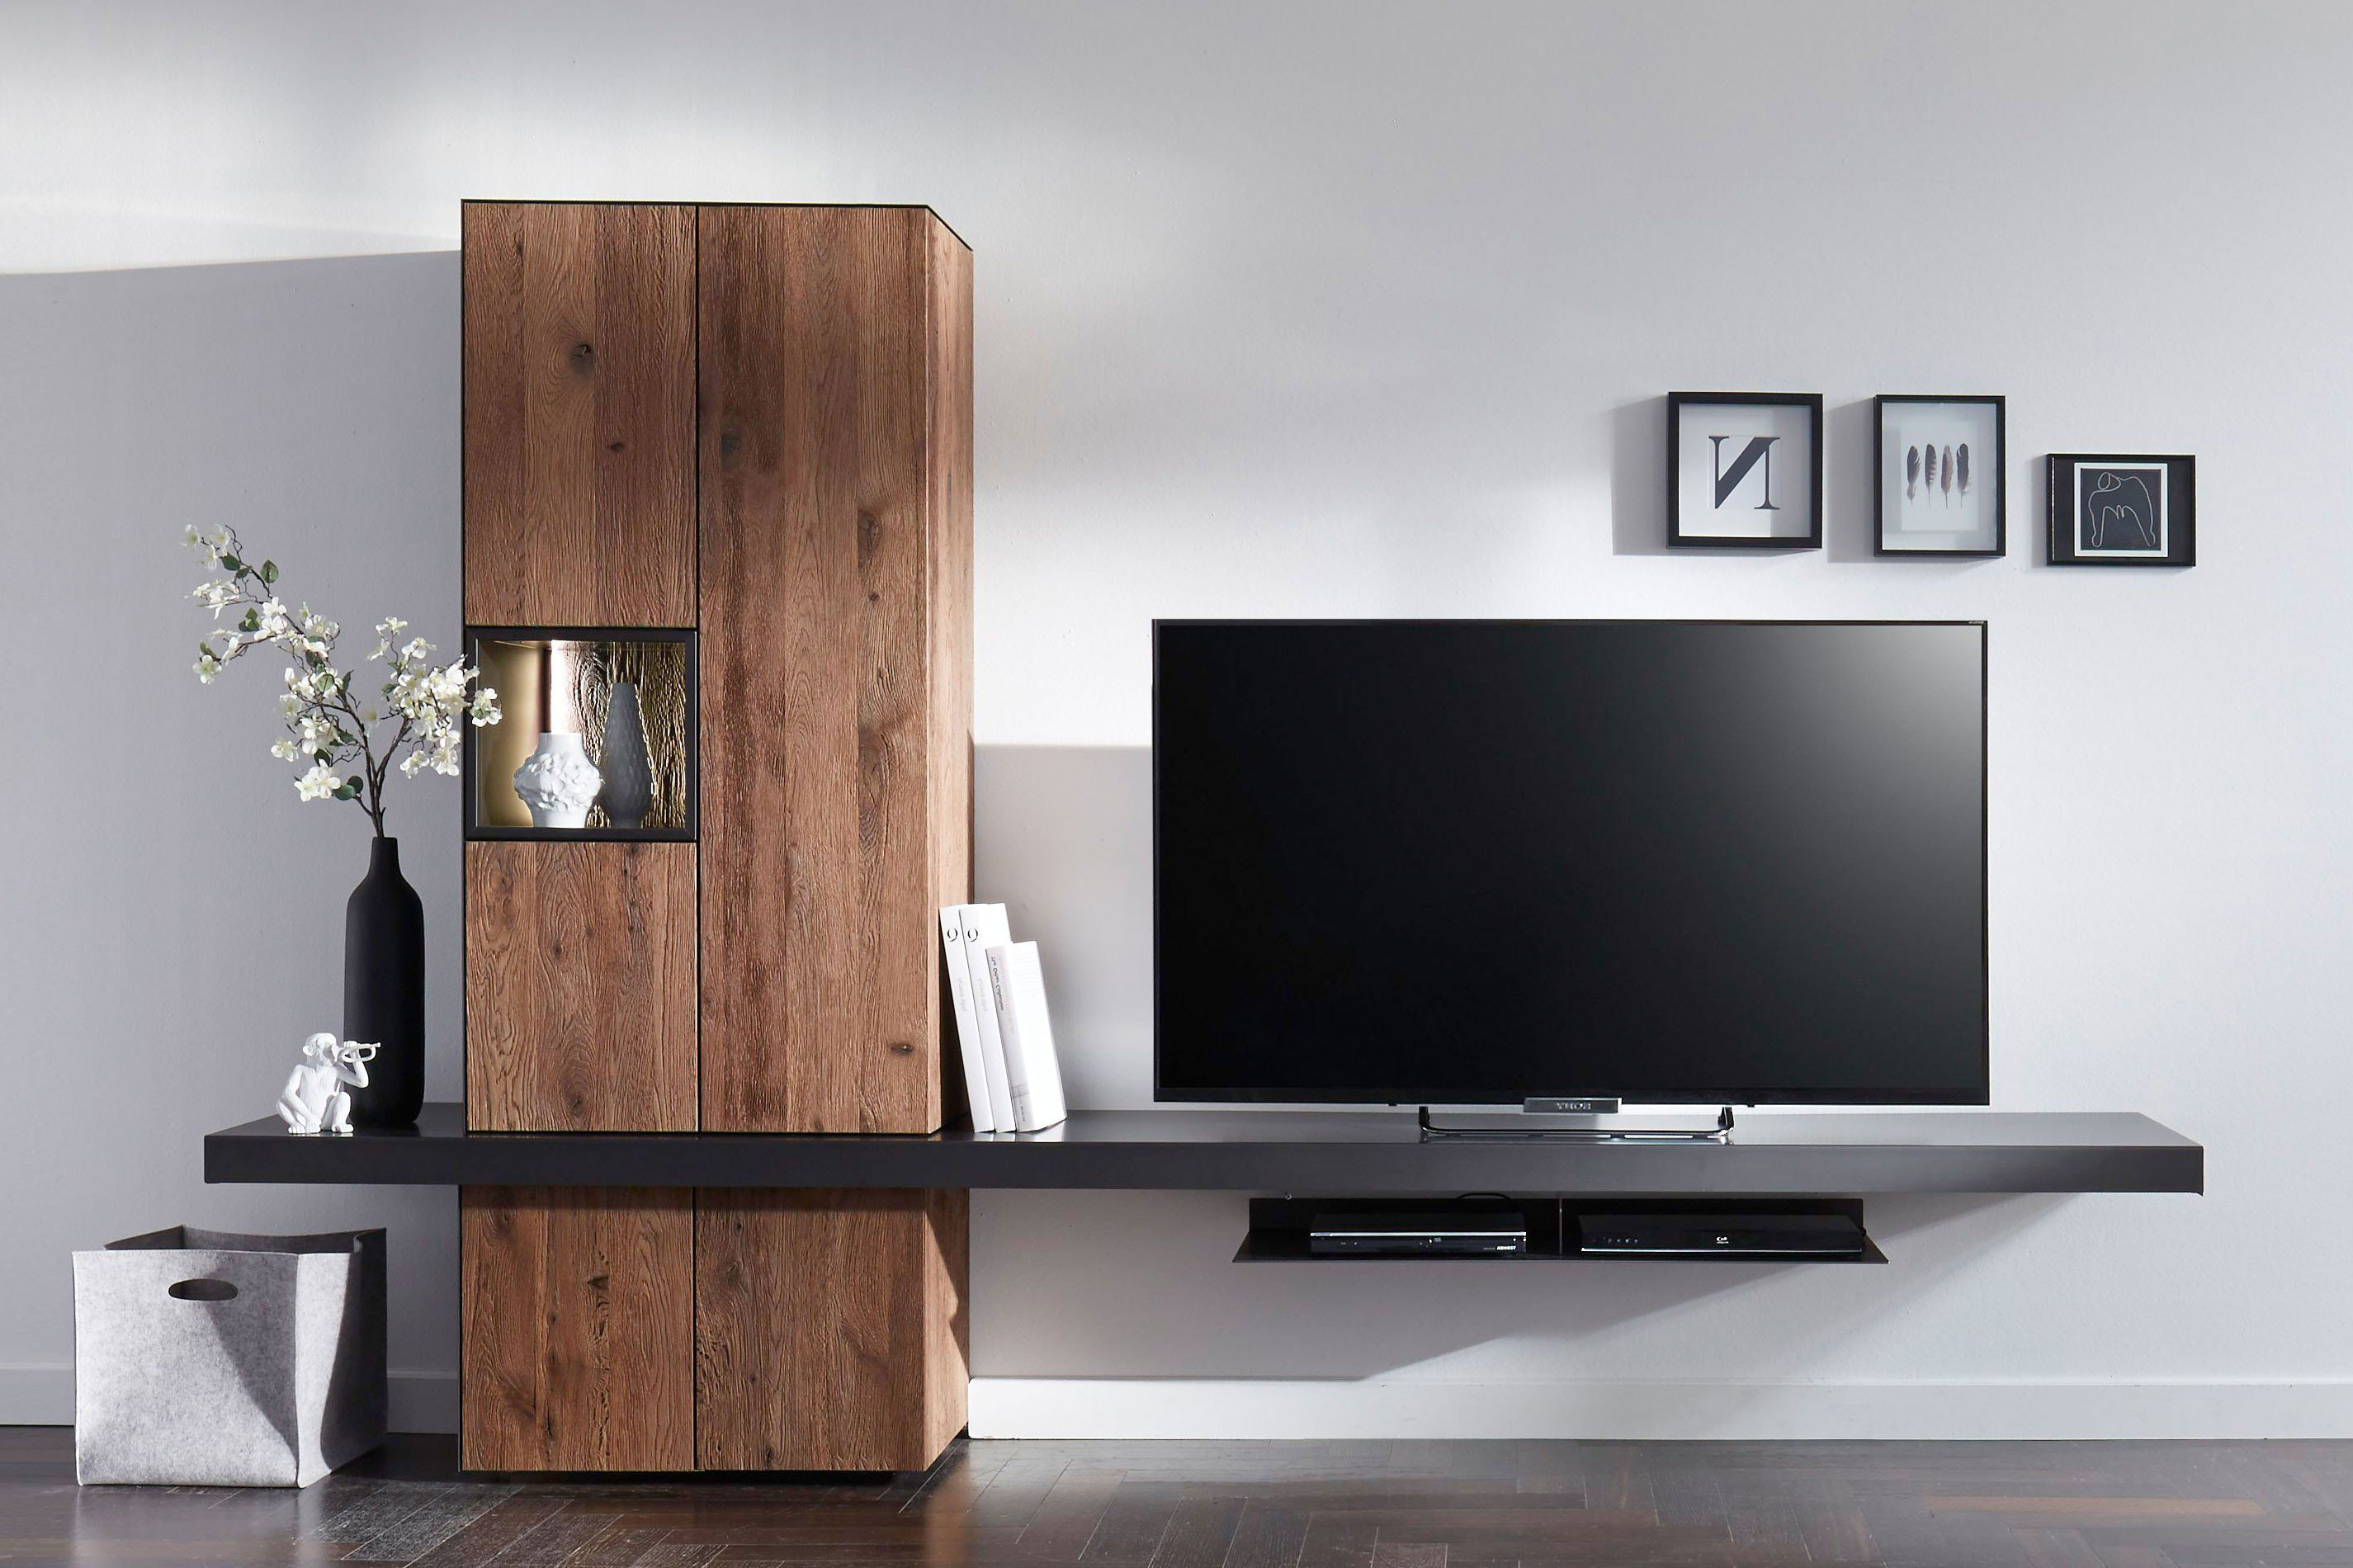 w stmann wohnwand nw 550 eiche ger uchert stahl m bel letz ihr online shop. Black Bedroom Furniture Sets. Home Design Ideas